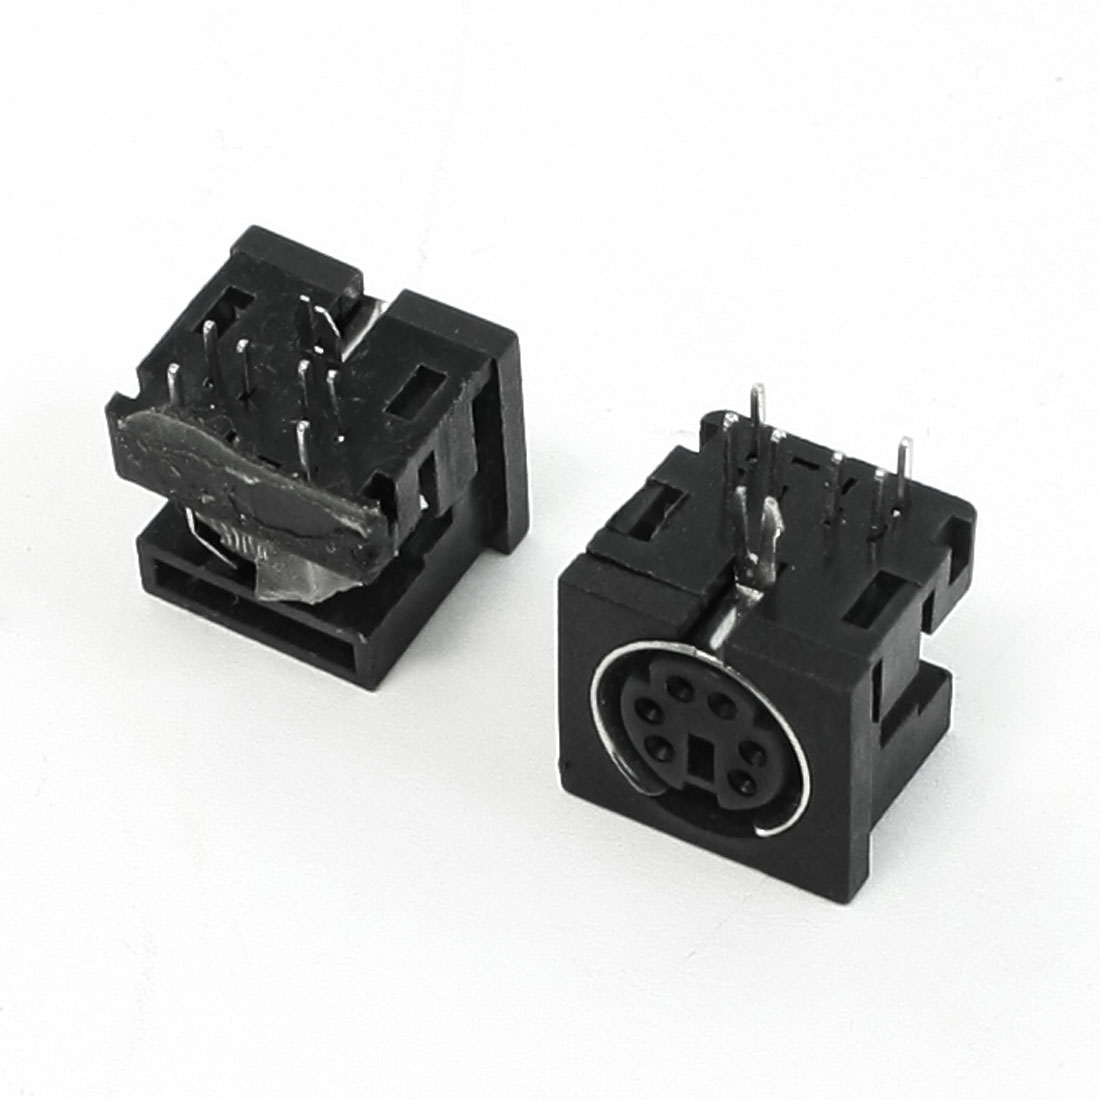 2pcs PCB Mounting Female DIN 6 Mini Pin Video Adapter Sockets